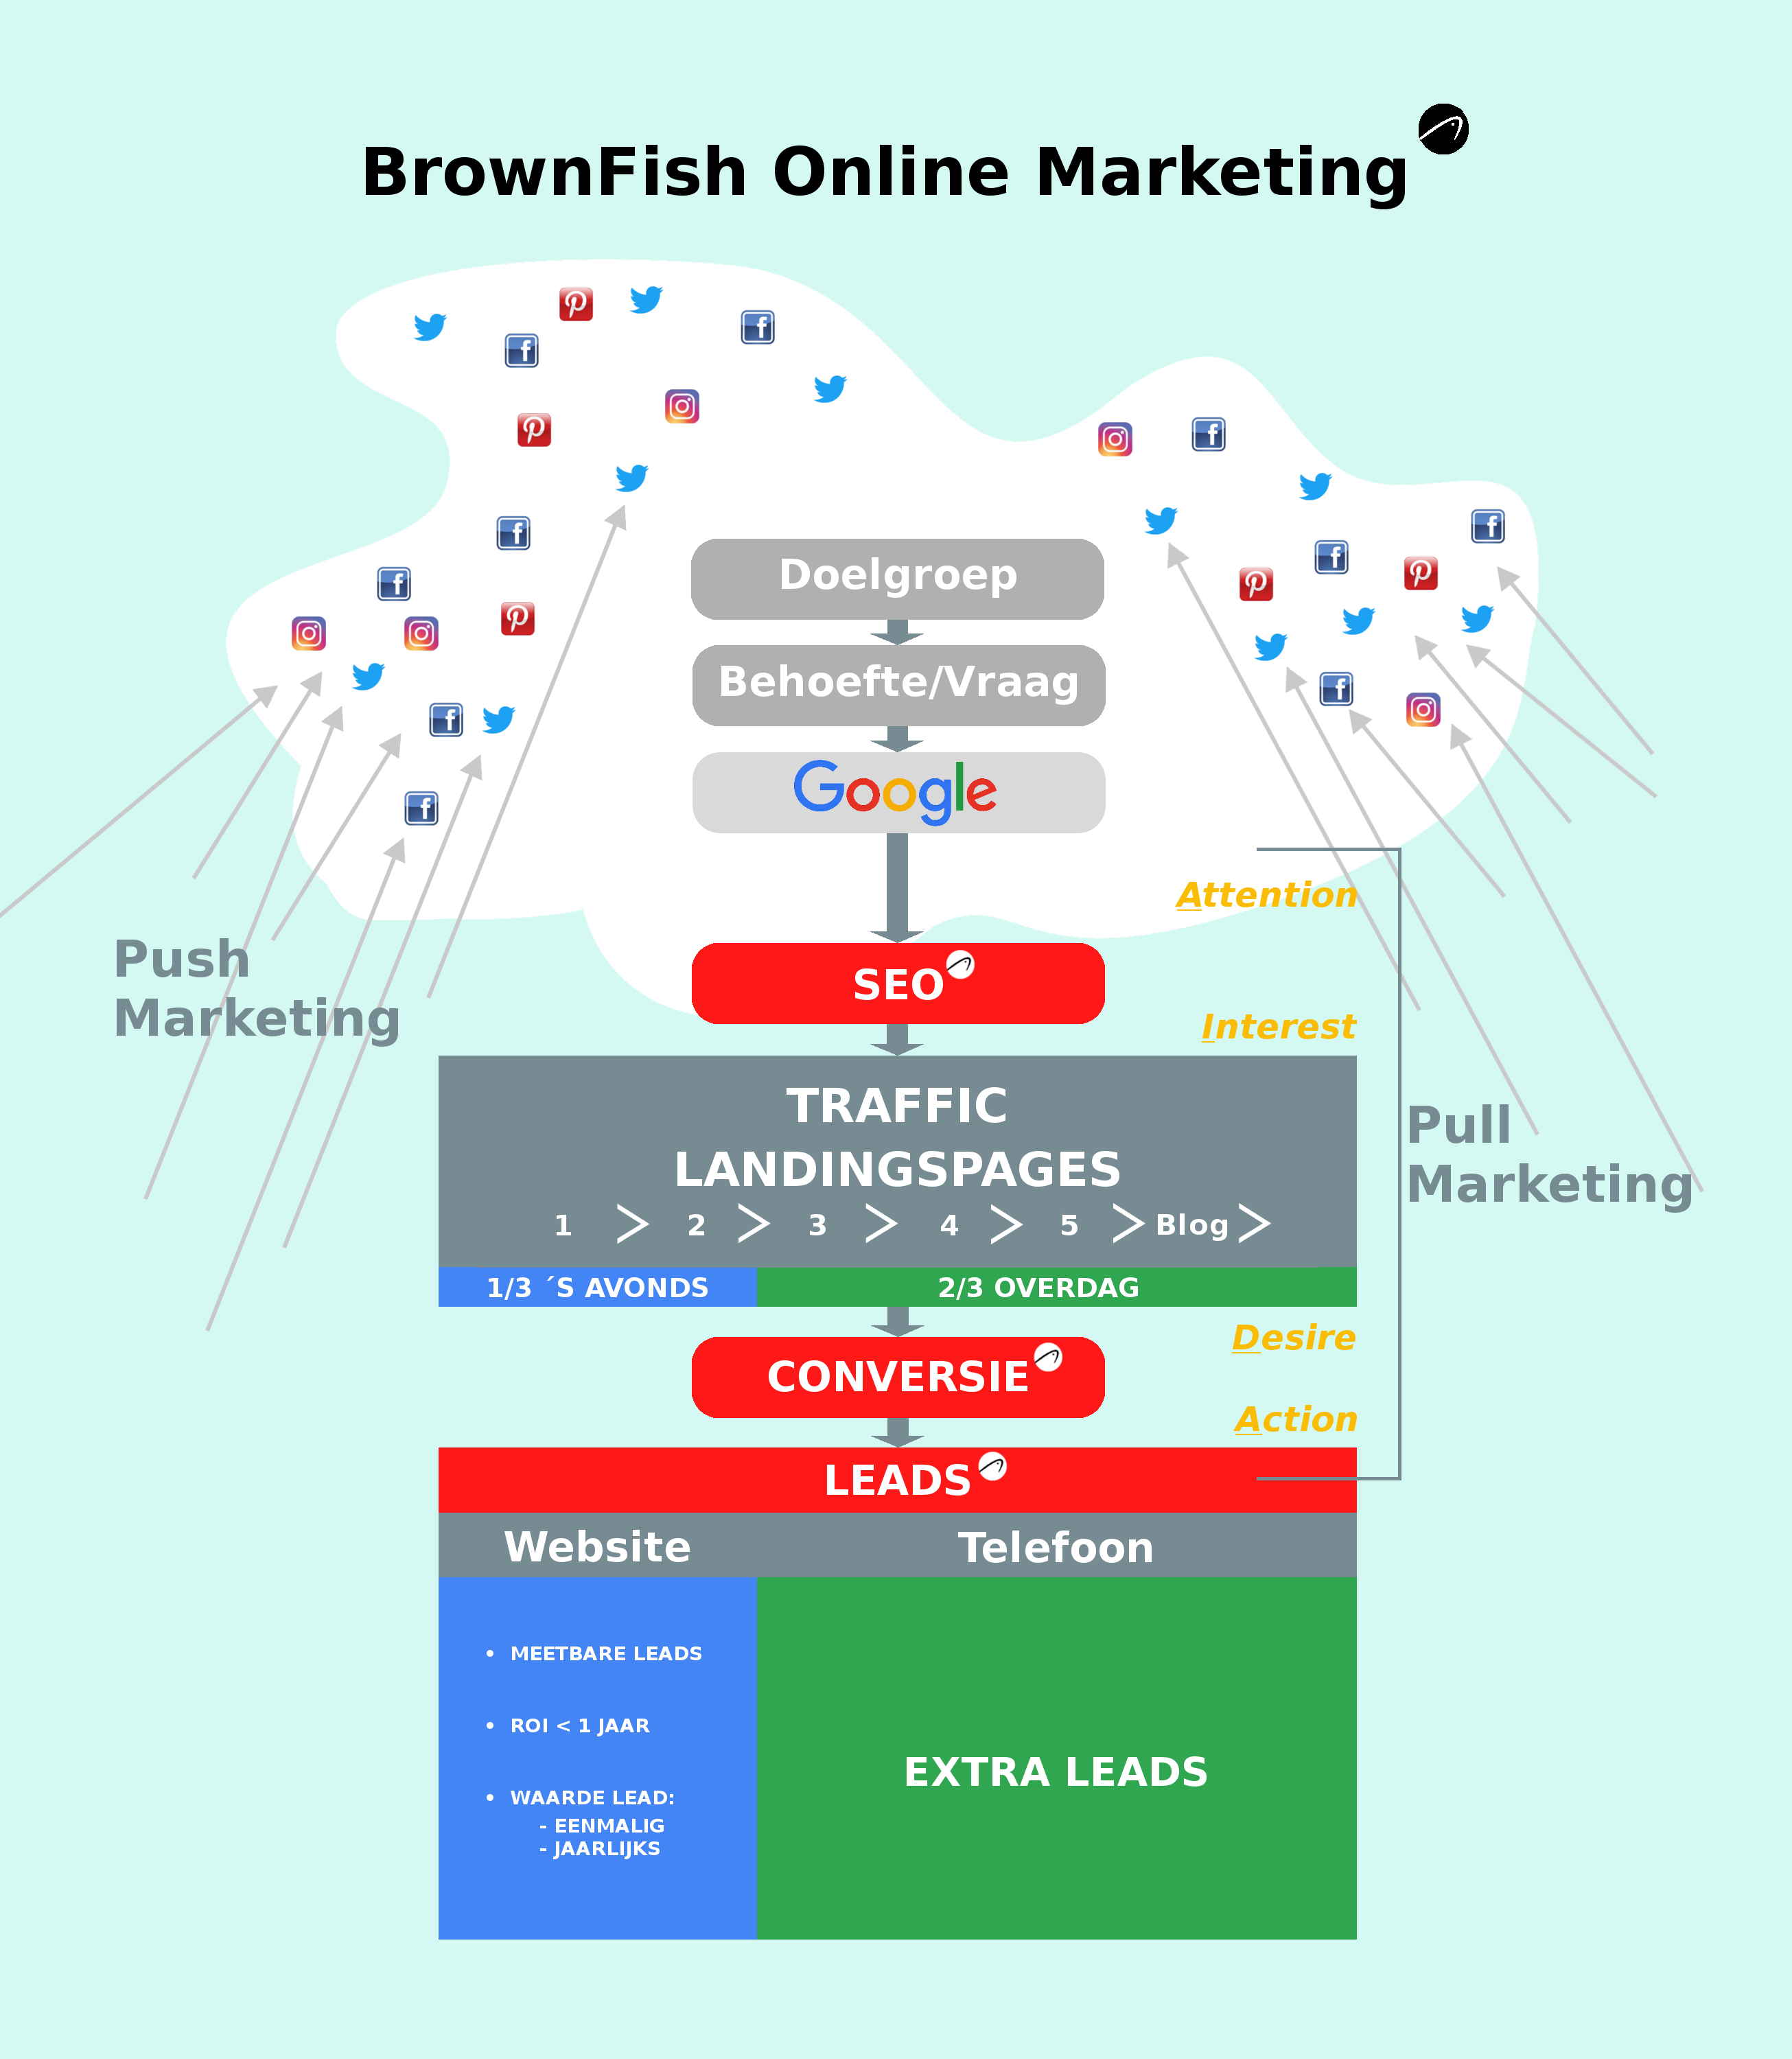 Social Media Marketing BrownFish Online Marketing